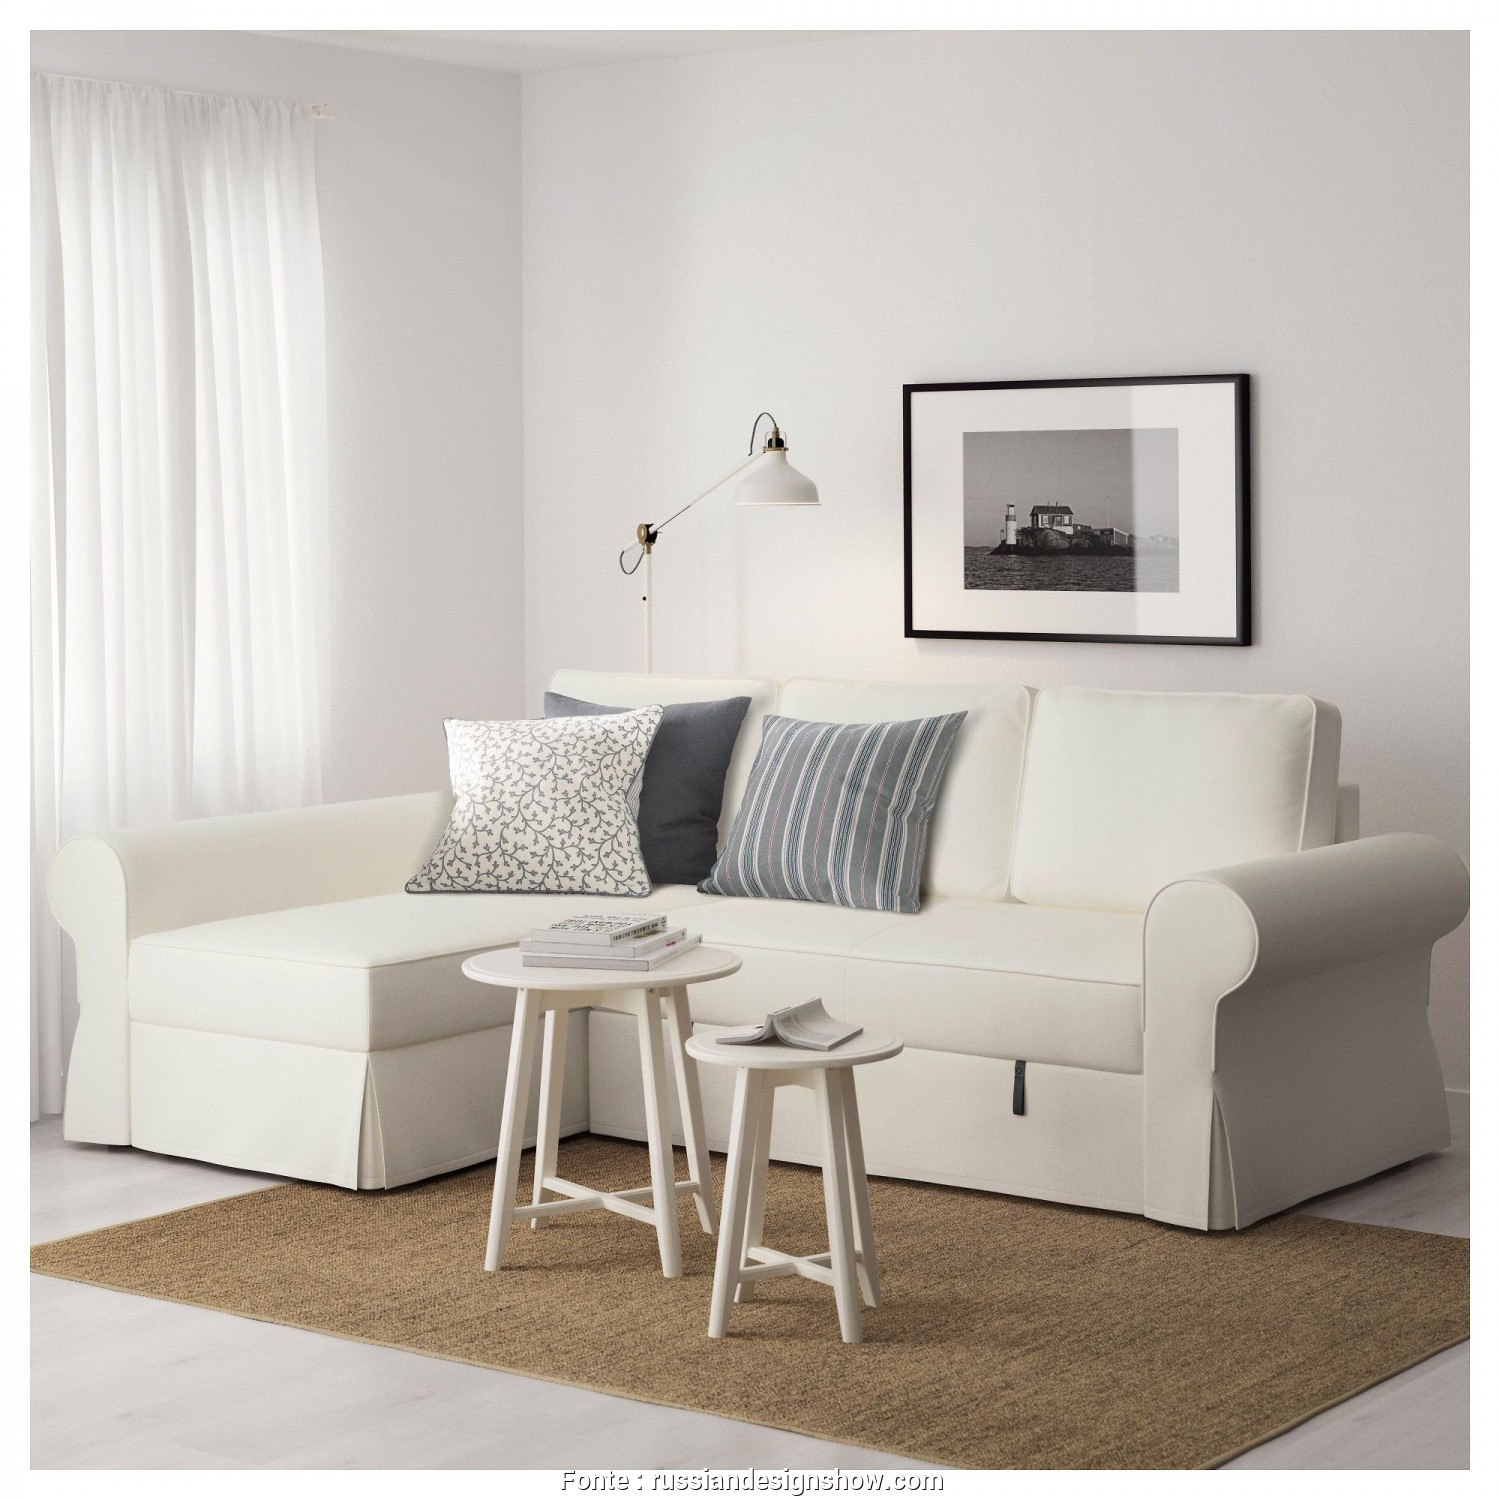 Backabro Ikea Couch, Maestoso Corner Couch Beds Unique Ikea Backabro Sofa, With Chaise Longue Cabin Pinterest